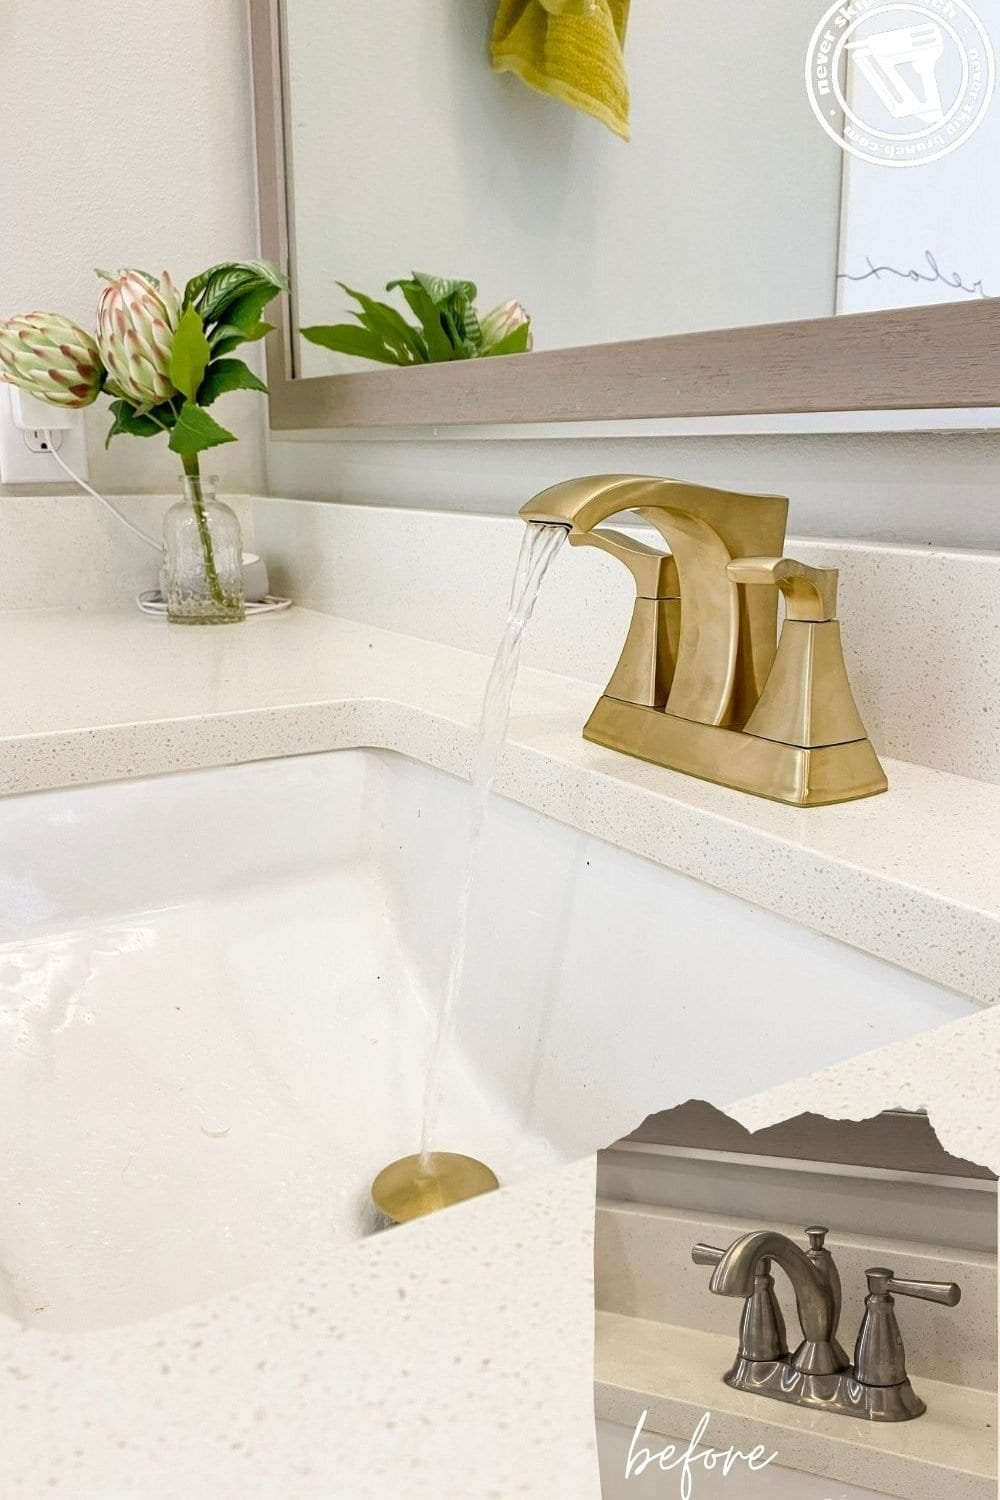 how to replace a centerset bathroom faucet, a tutorial featured by top US DIY blog, Never Skip Brunch